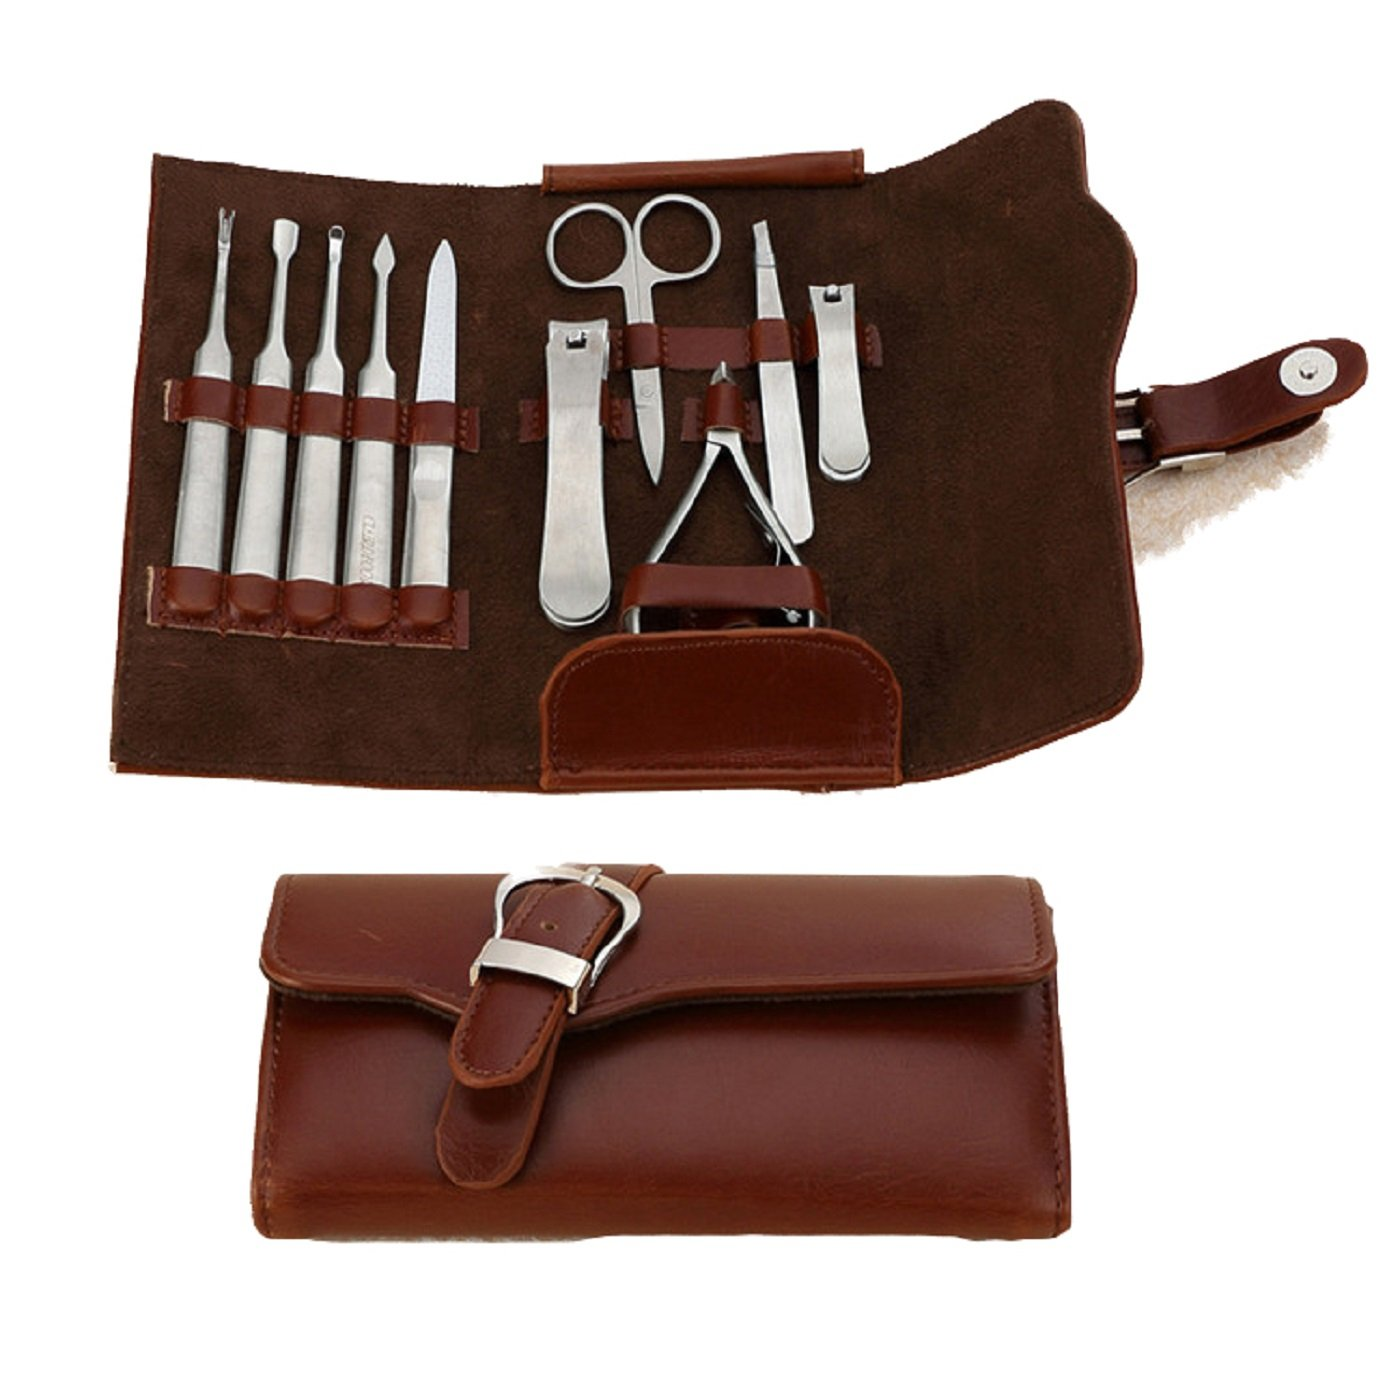 Manicure Set Pedicure Kit Quality Leather Nail Care Clipper Scissors Grooming Tool Mens Women (Brown Leather) Abielmo